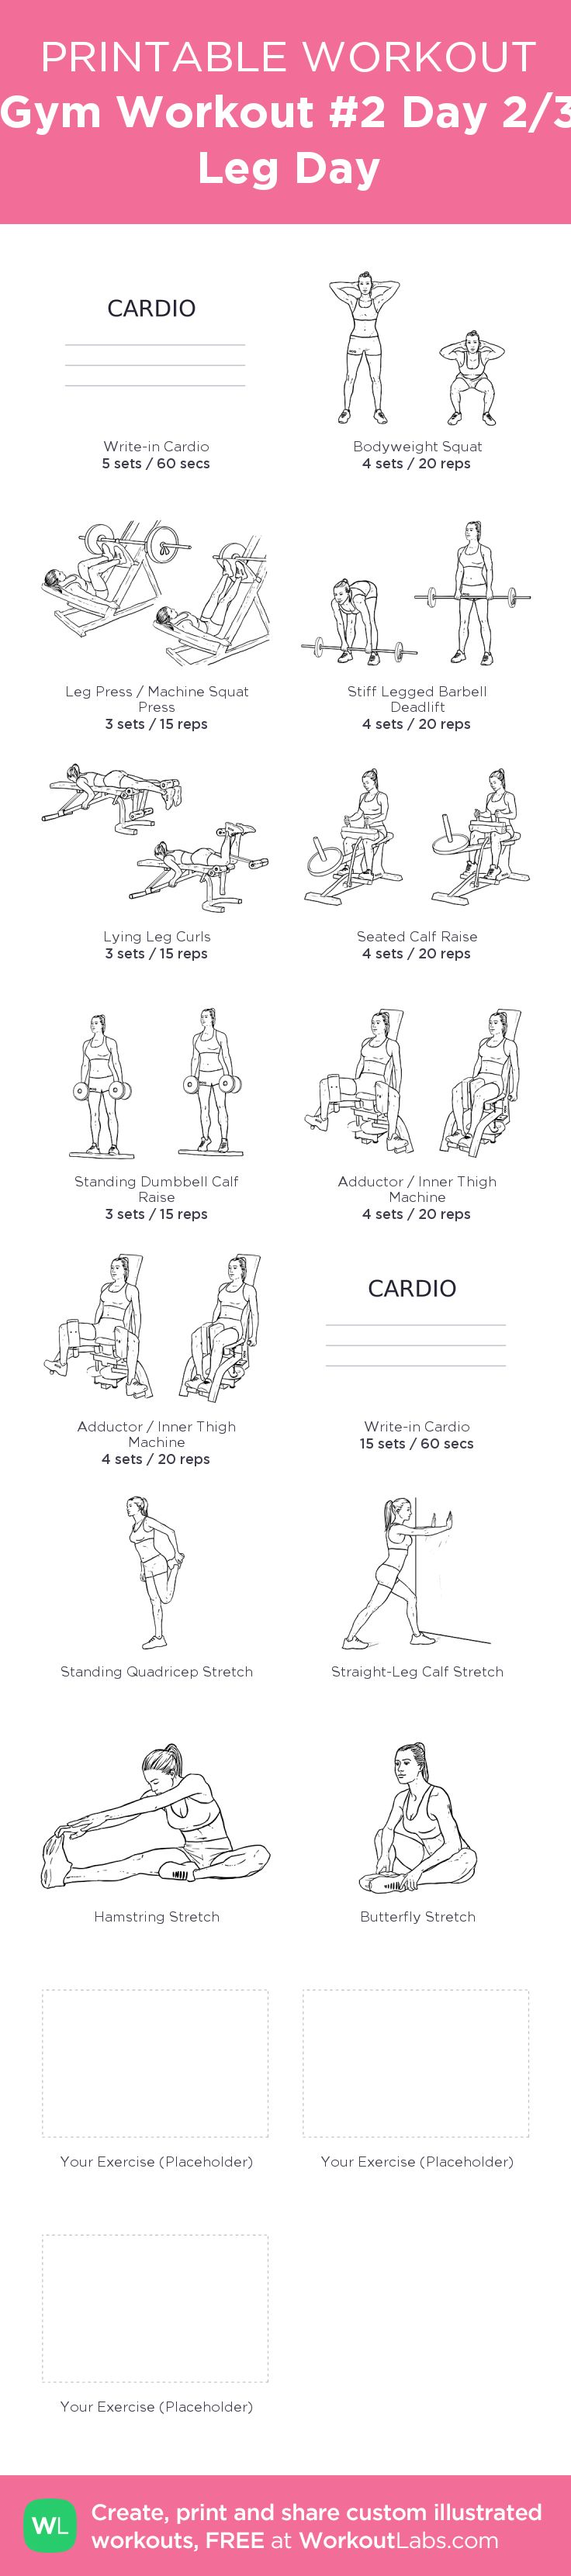 Gym Workout #2 Day 2/3 Leg Day –my custom workout created at WorkoutLabs.com • Click through to download as printable PDF! #customworkout